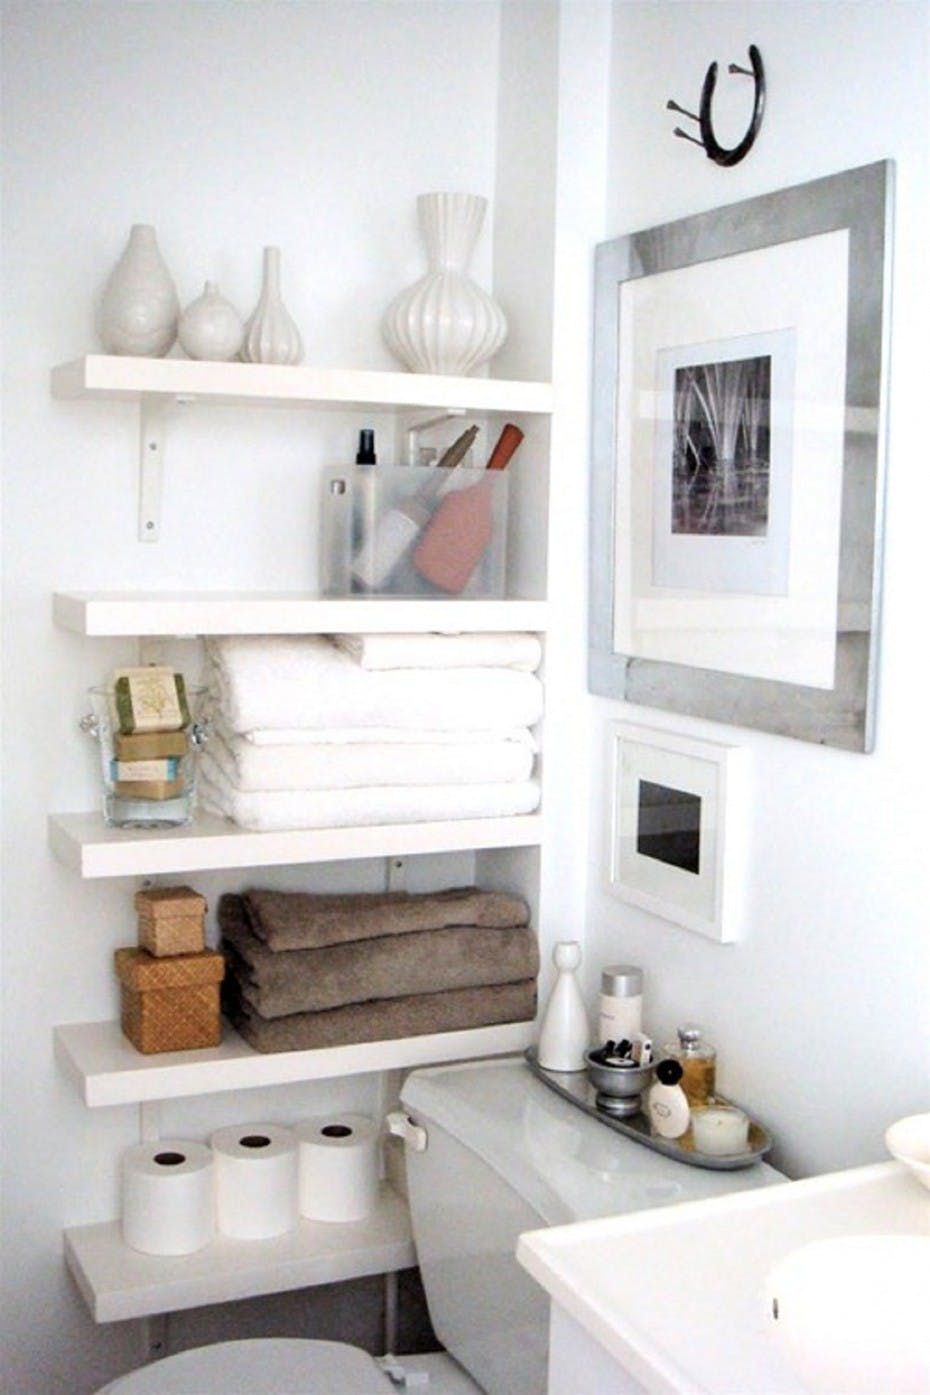 6 Places to Add Shelving (& Up Storage) in a Small Bathroom | home ...